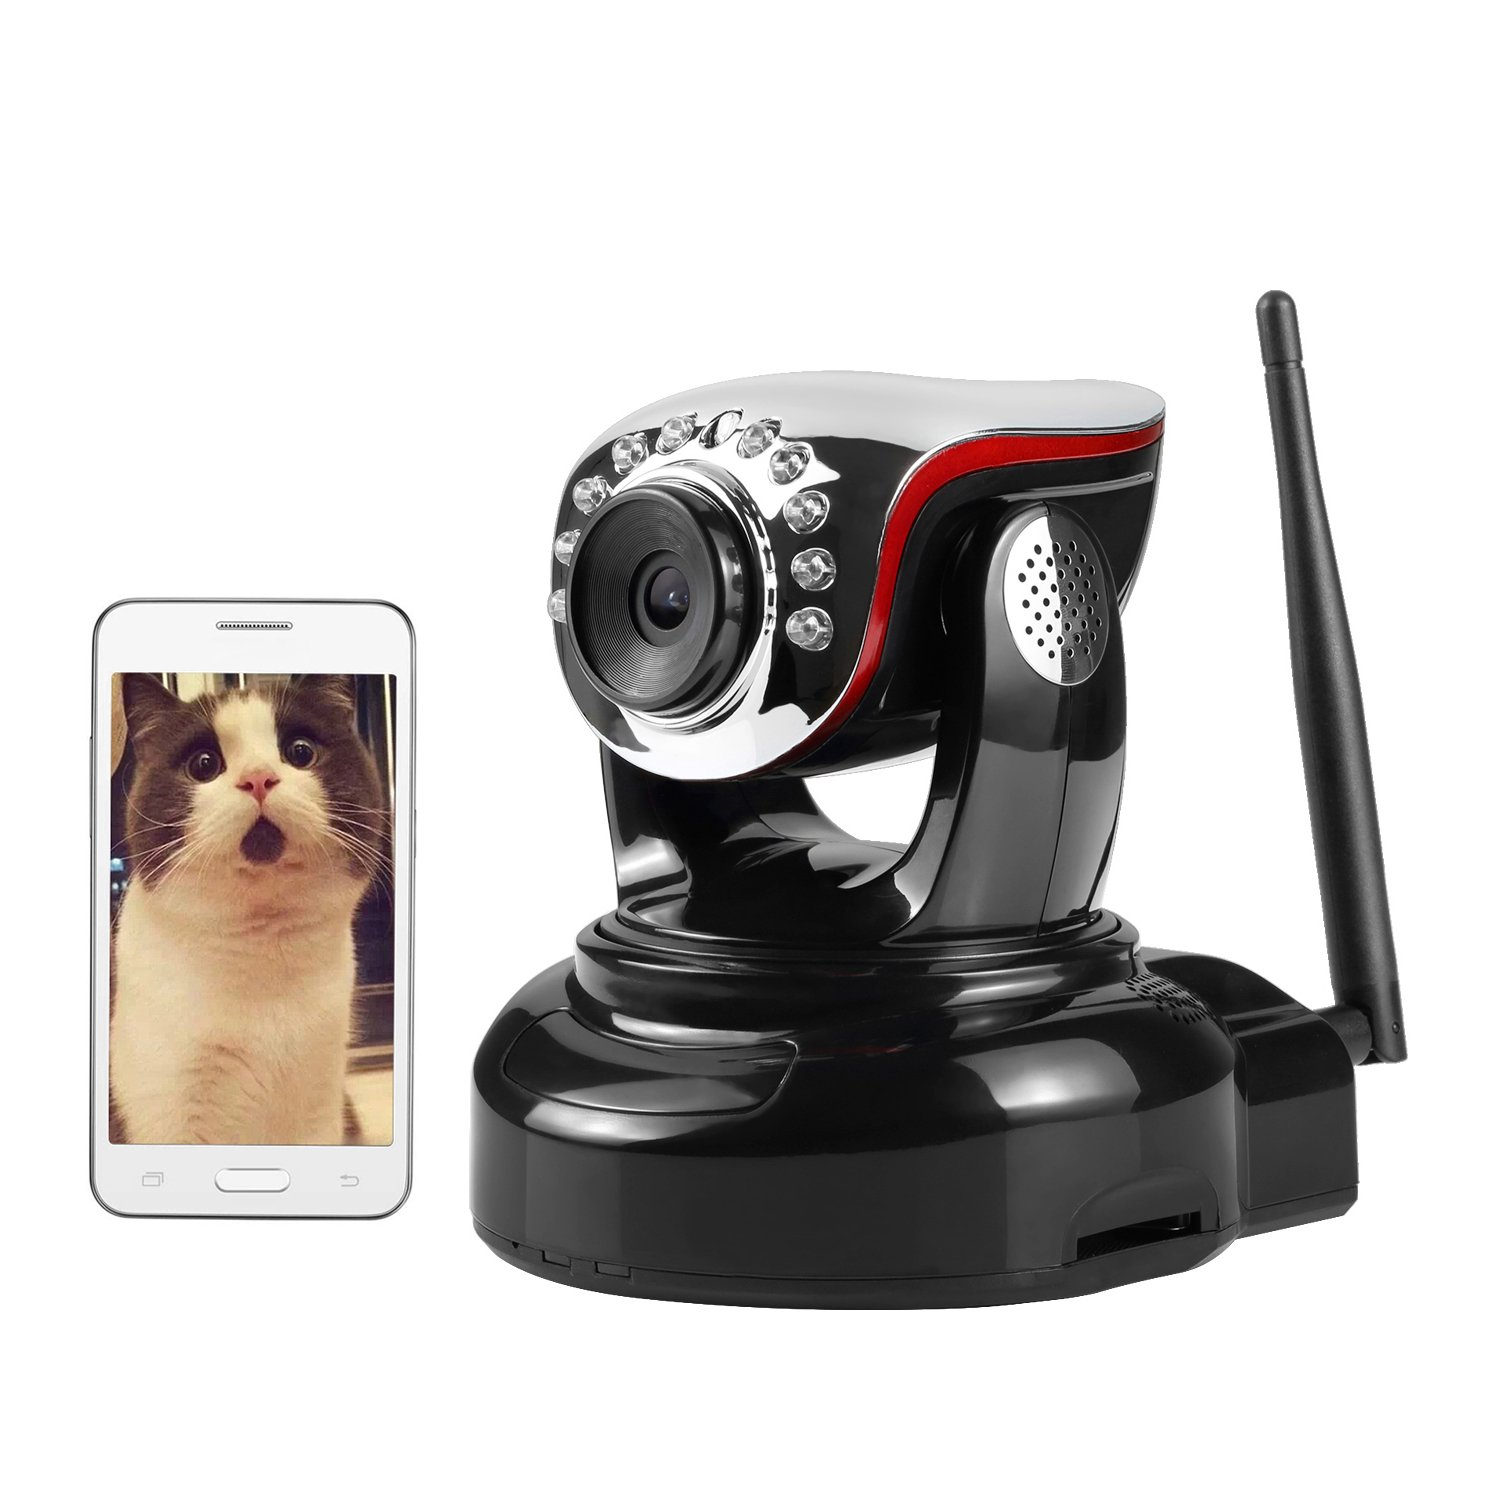 Amazon.com : Wireless IP Camera, Nexgadget 720P WiFi Security ...